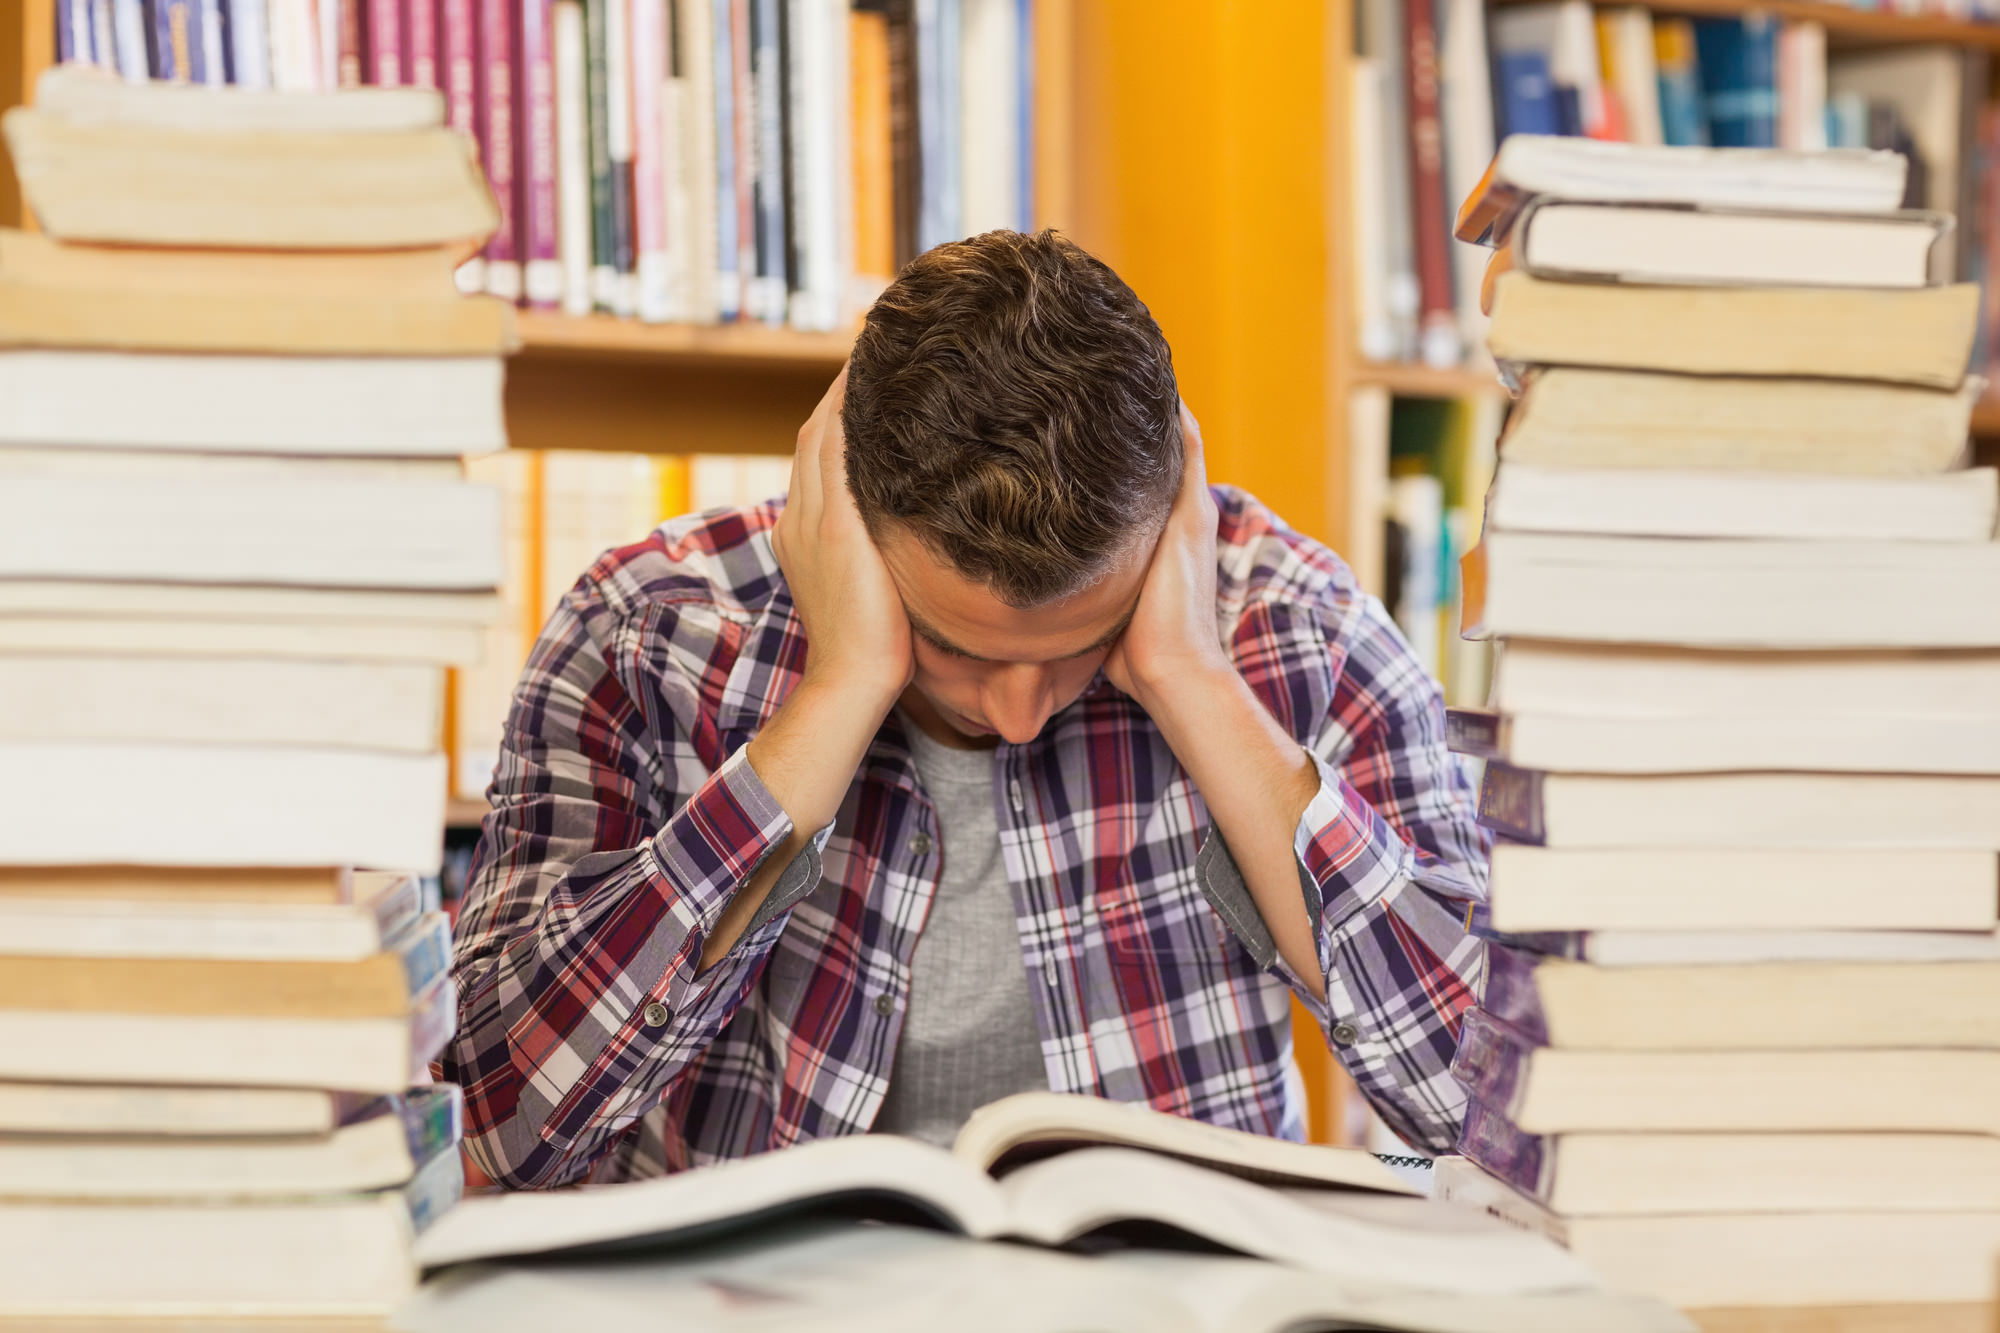 Concentrated handsome student studying between piles of books in library